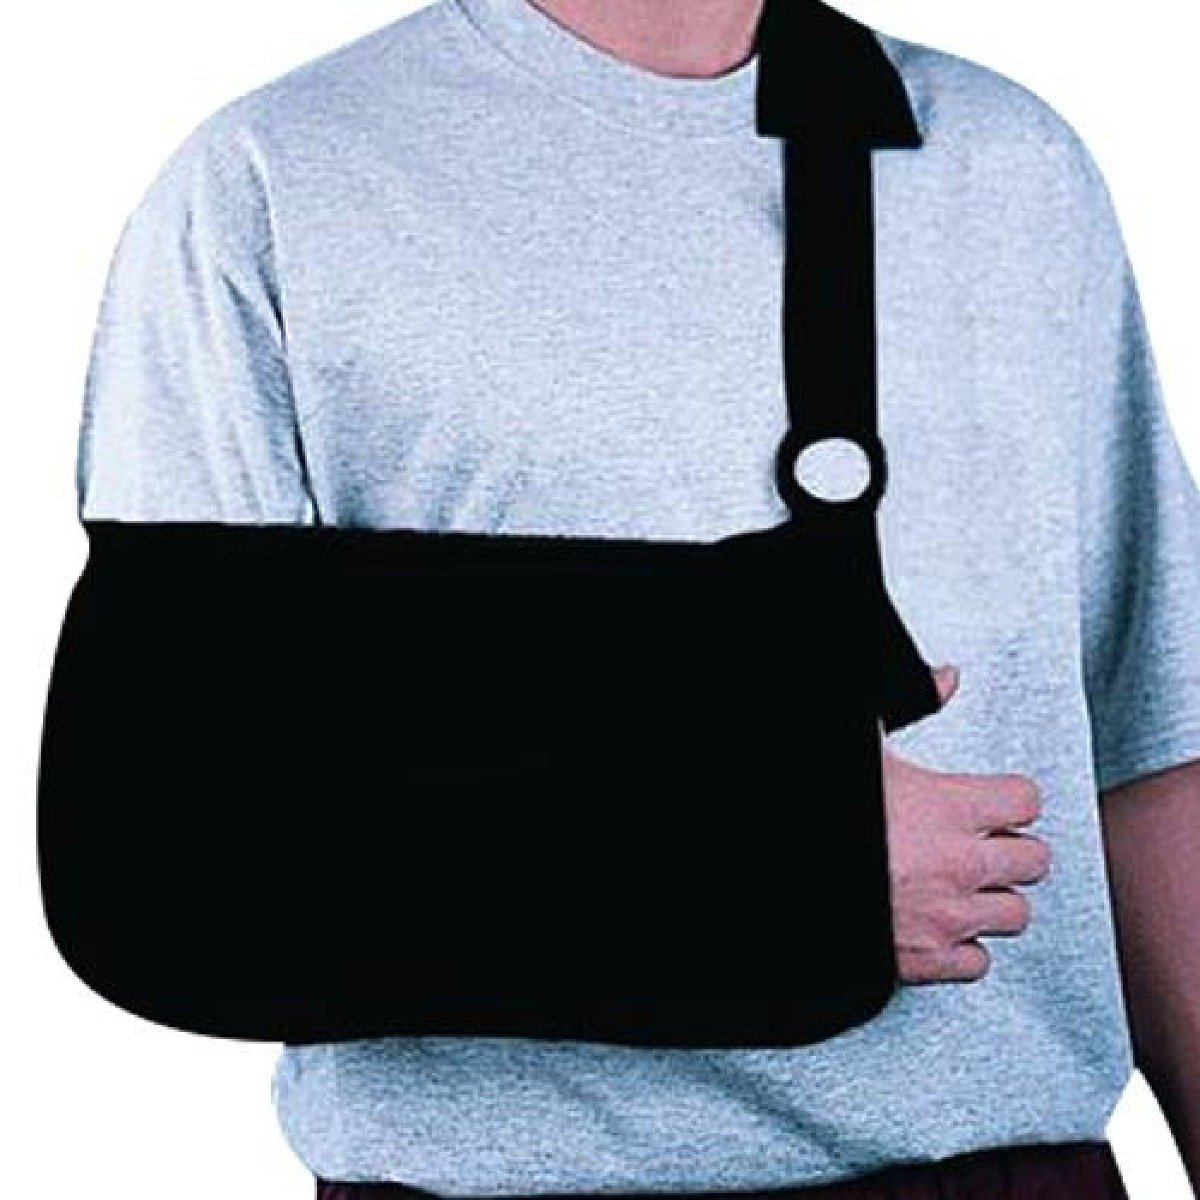 Rolyan Envelope Arm Sling with Pad, Medium